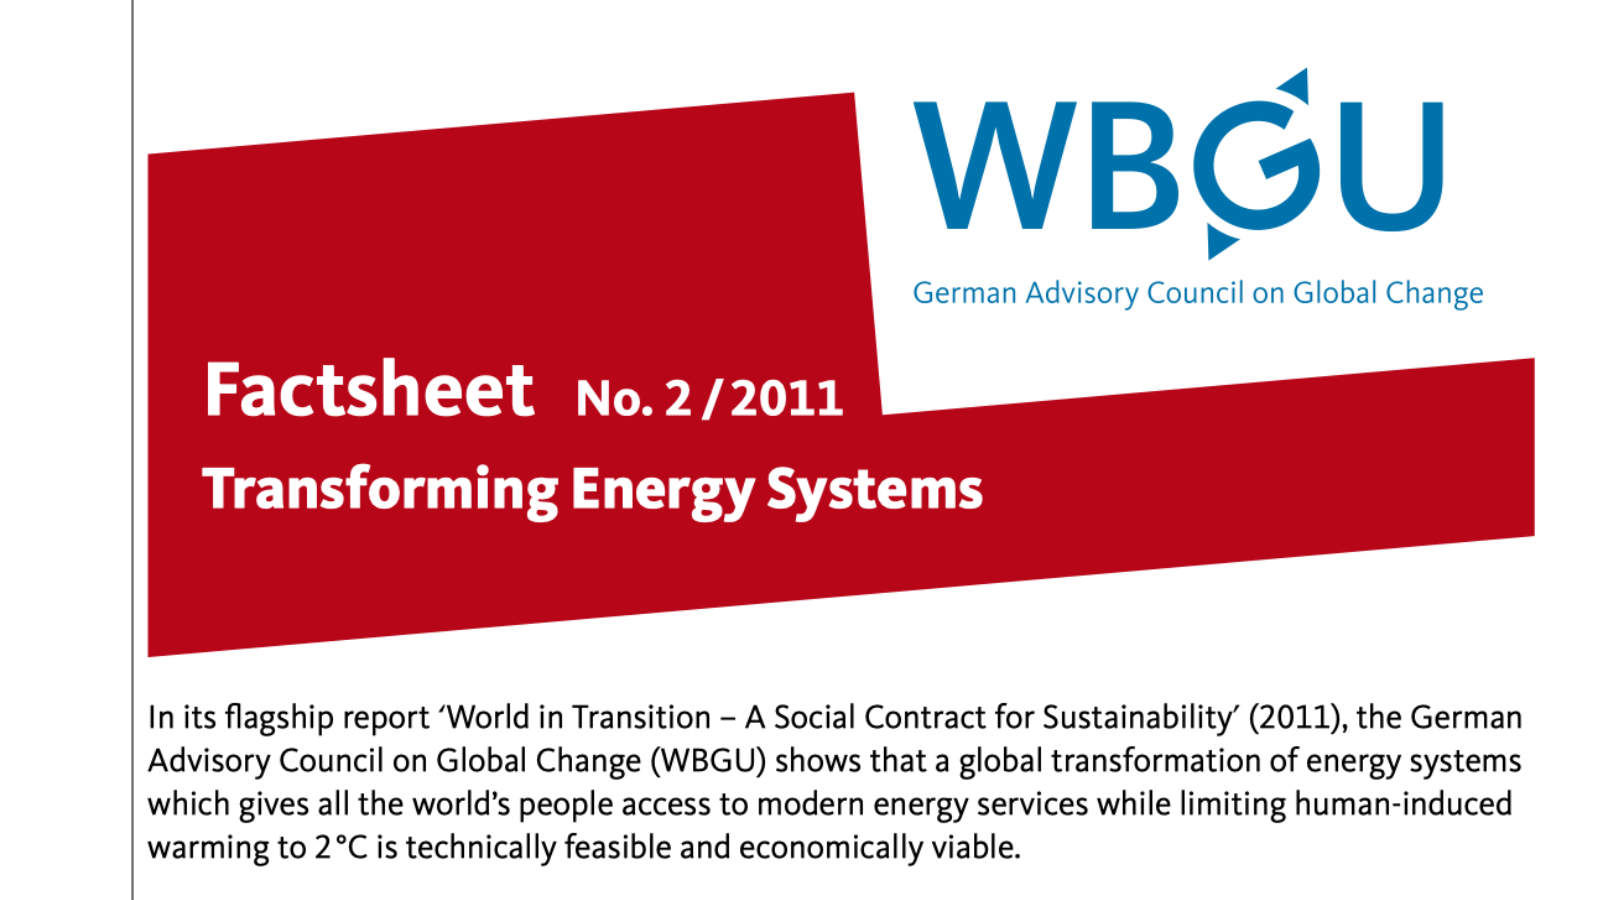 Factsheet: Transforming Energy Systems